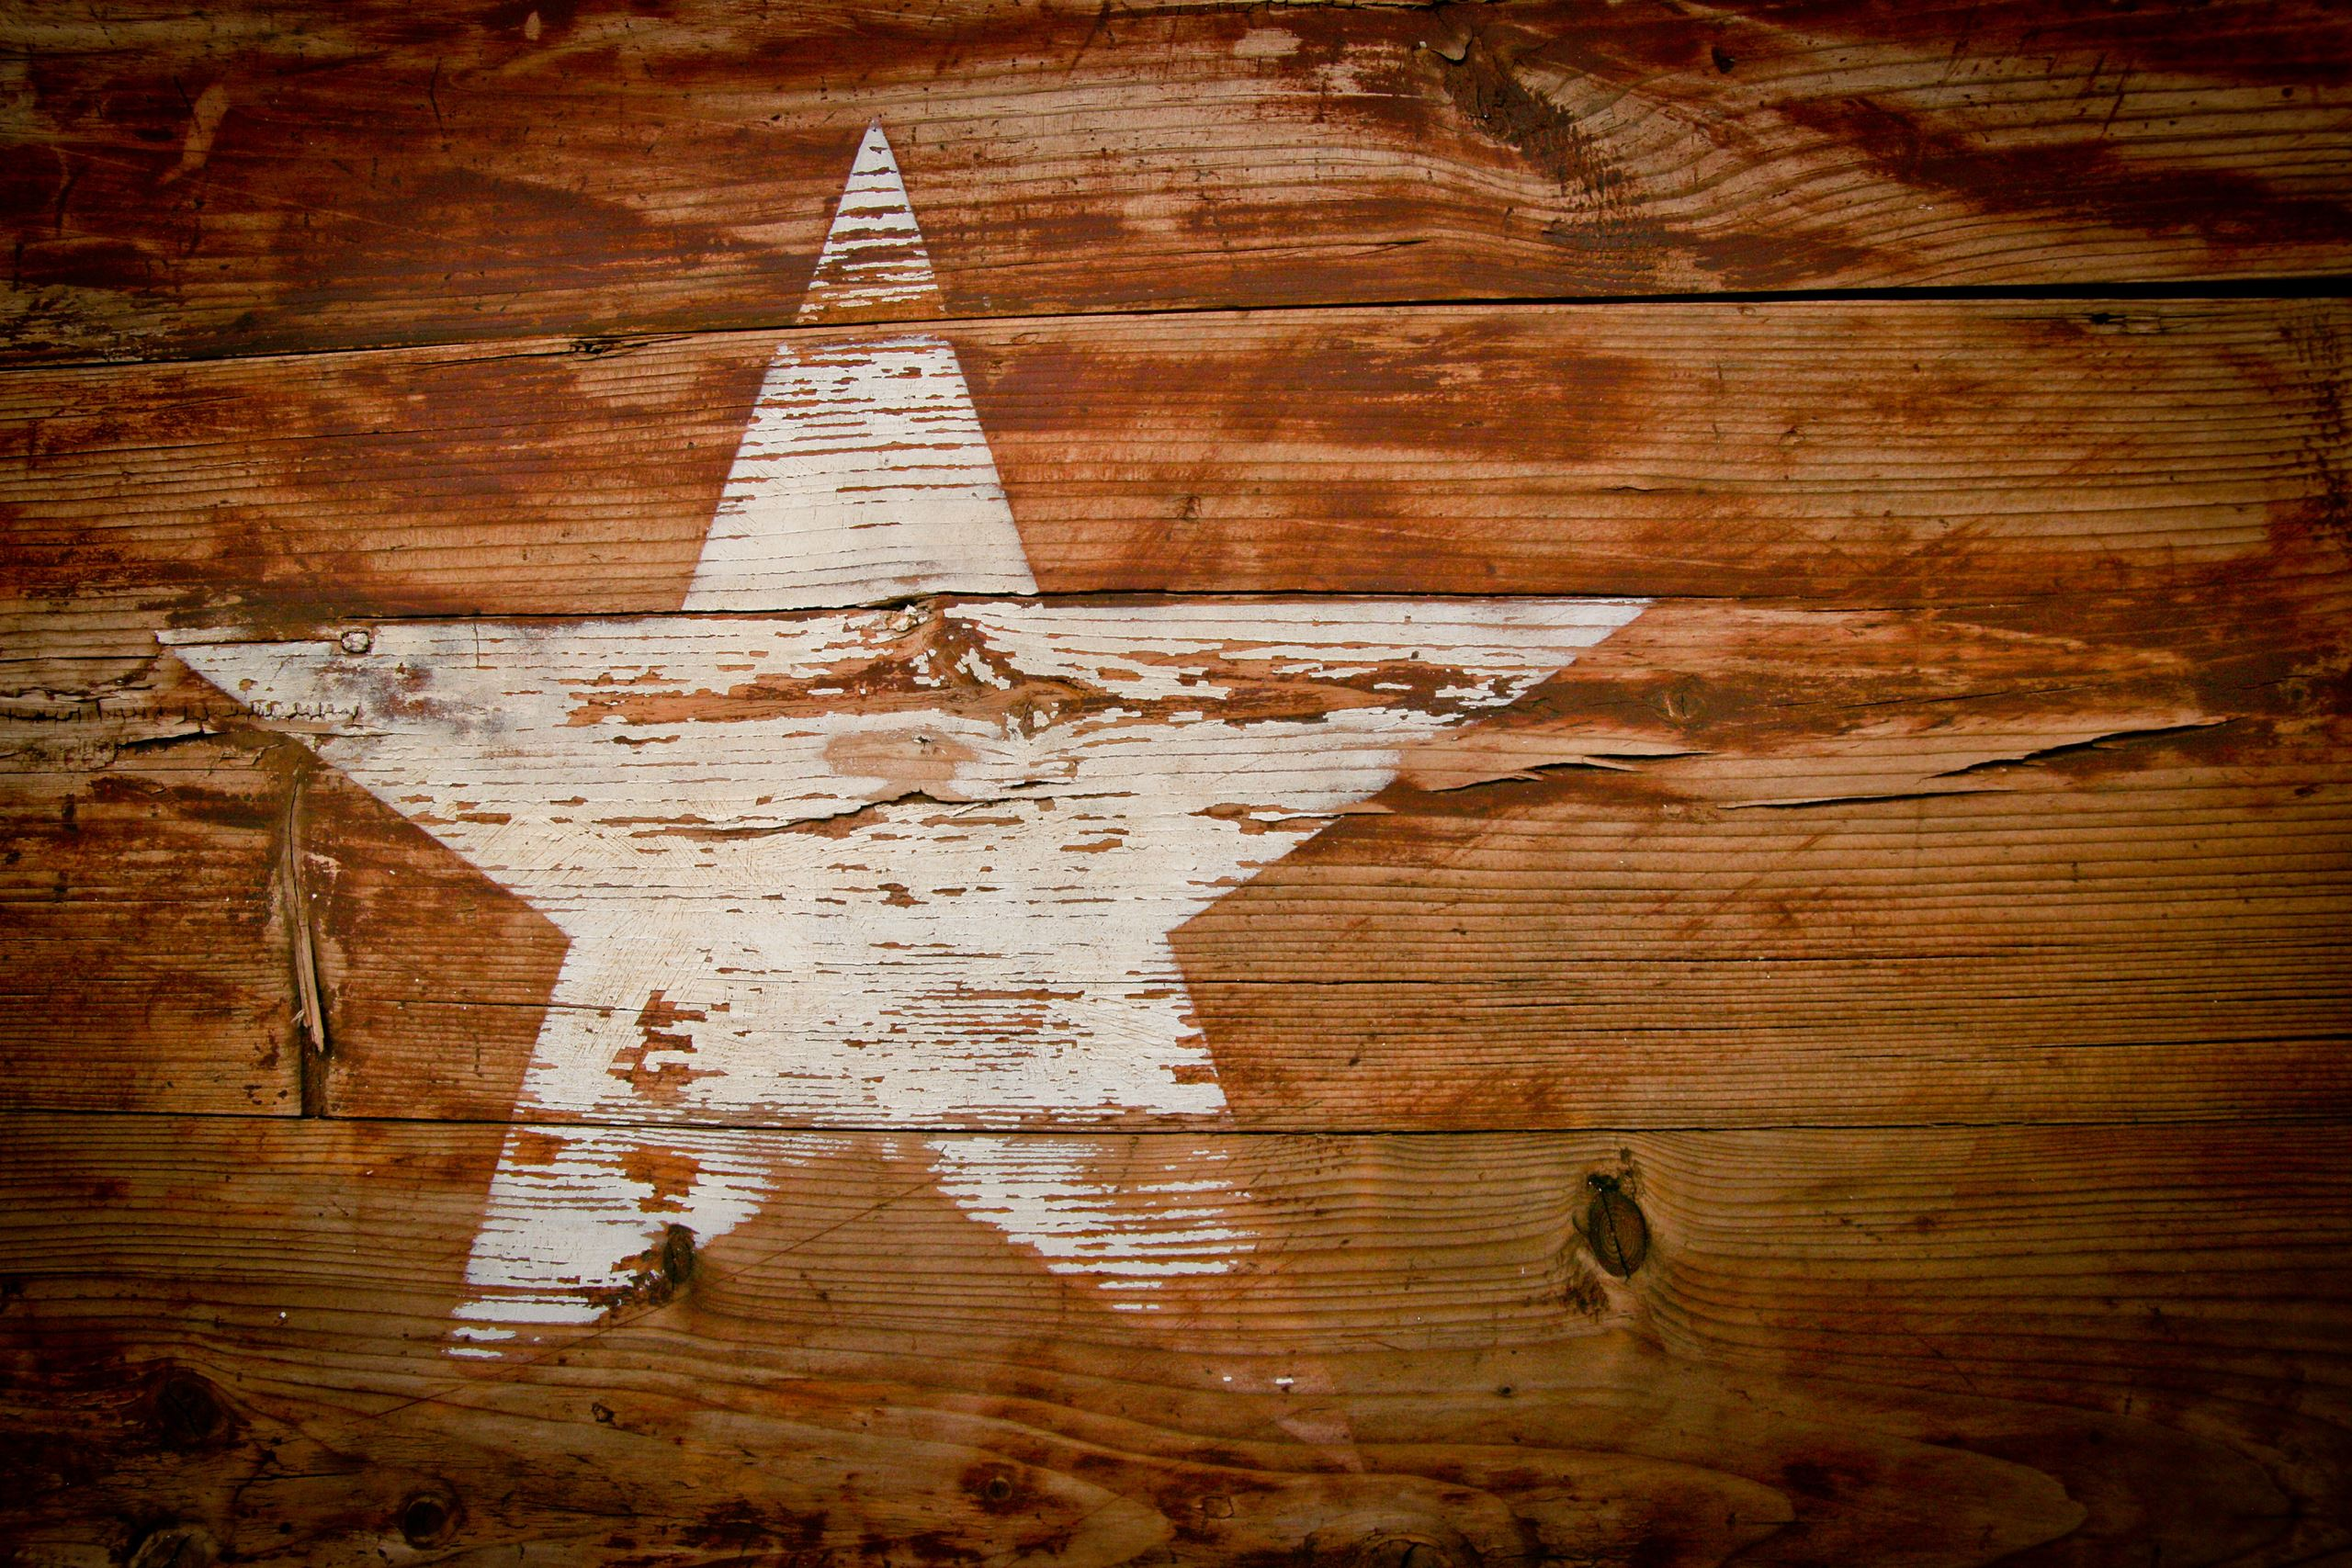 Texas Star painted on wood